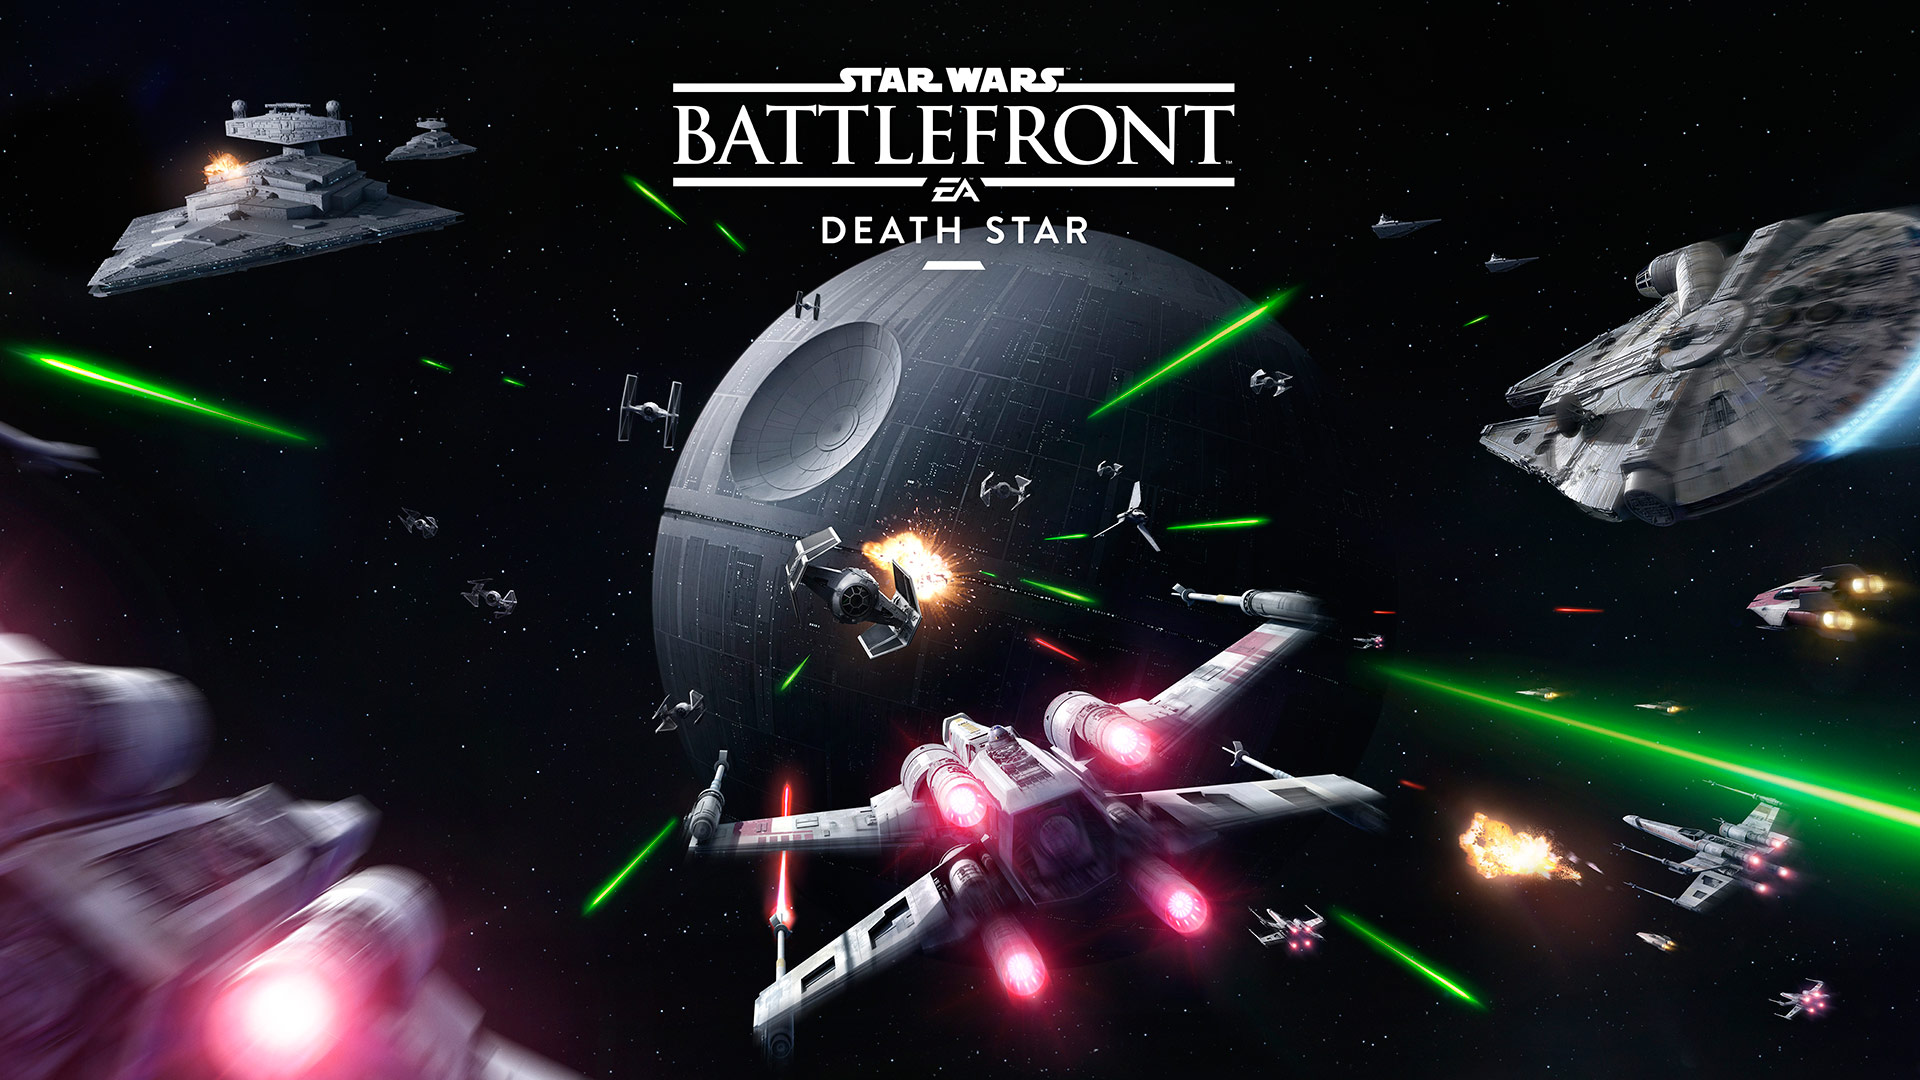 There Was Big News At Star Wars Celebration Europe - Battlefront Death Star Dlc , HD Wallpaper & Backgrounds